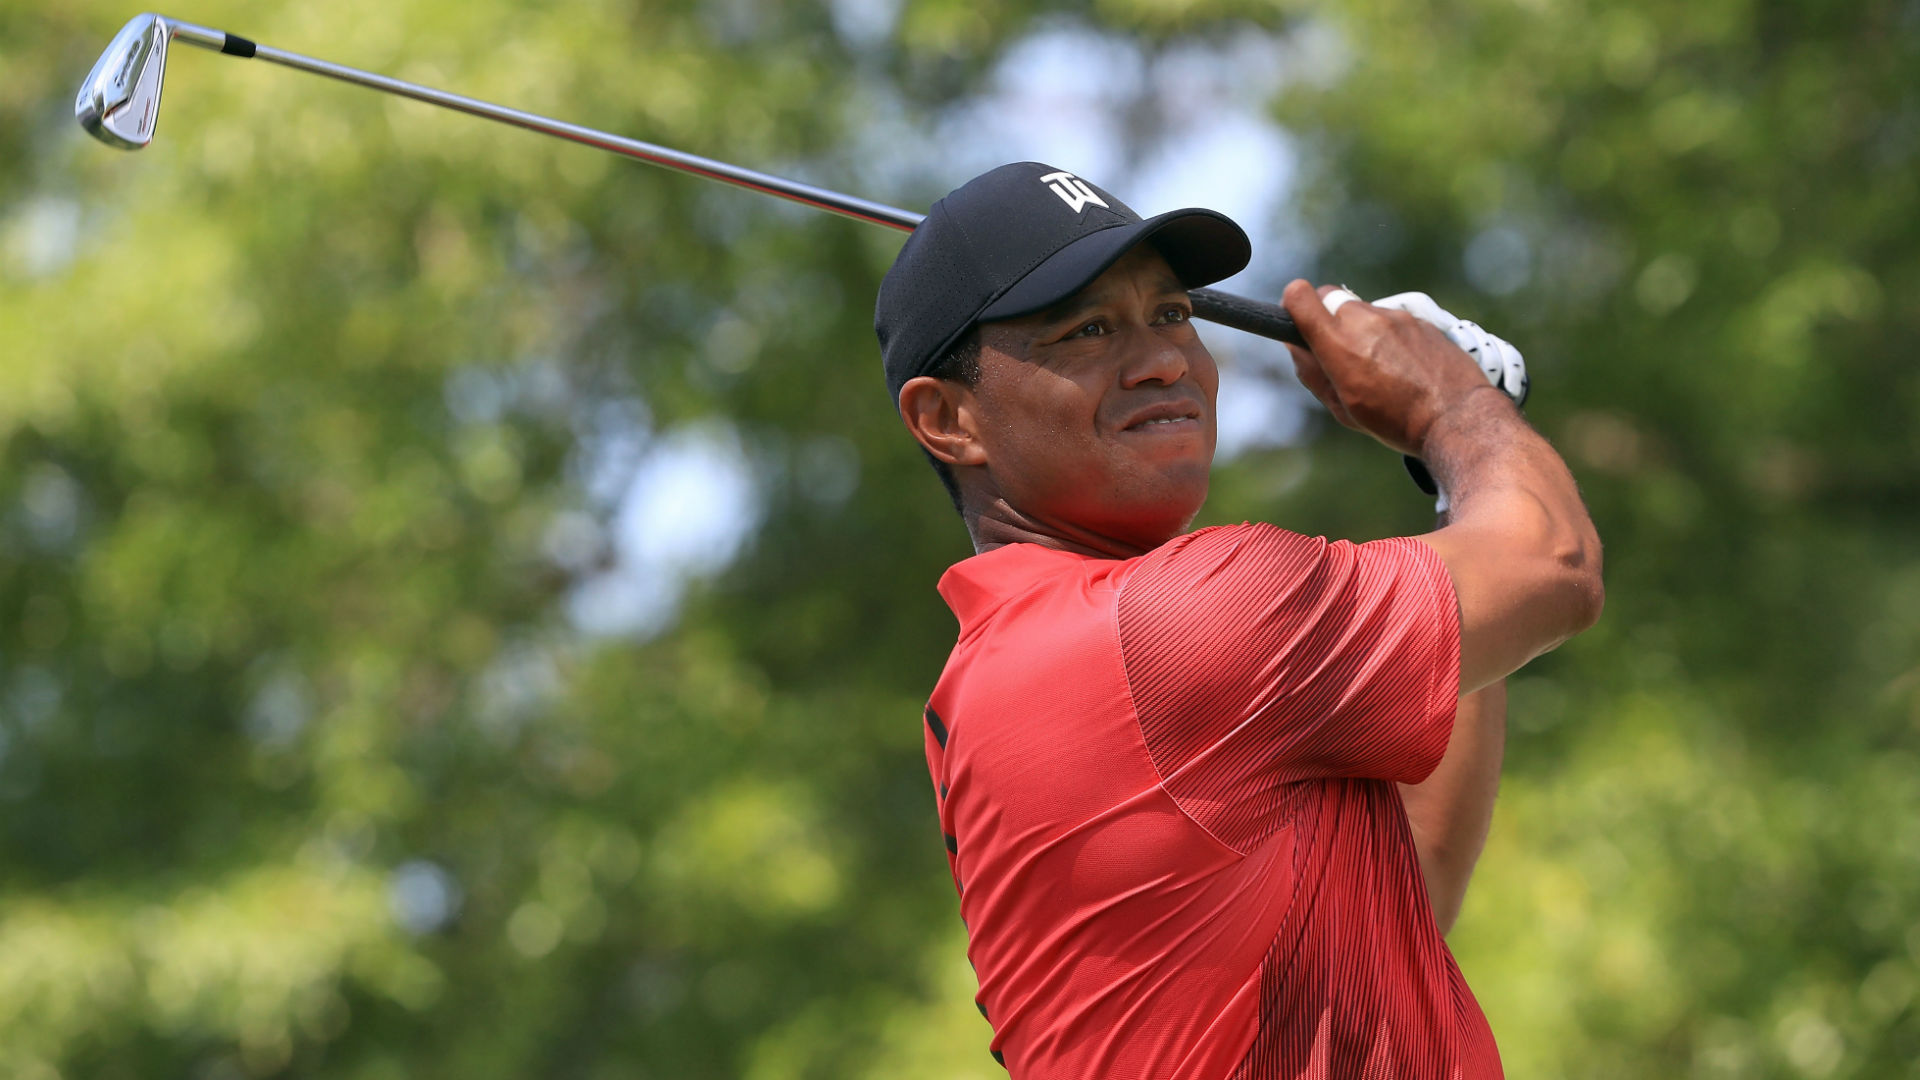 tiger woods score  round 4 results  highlights from wells